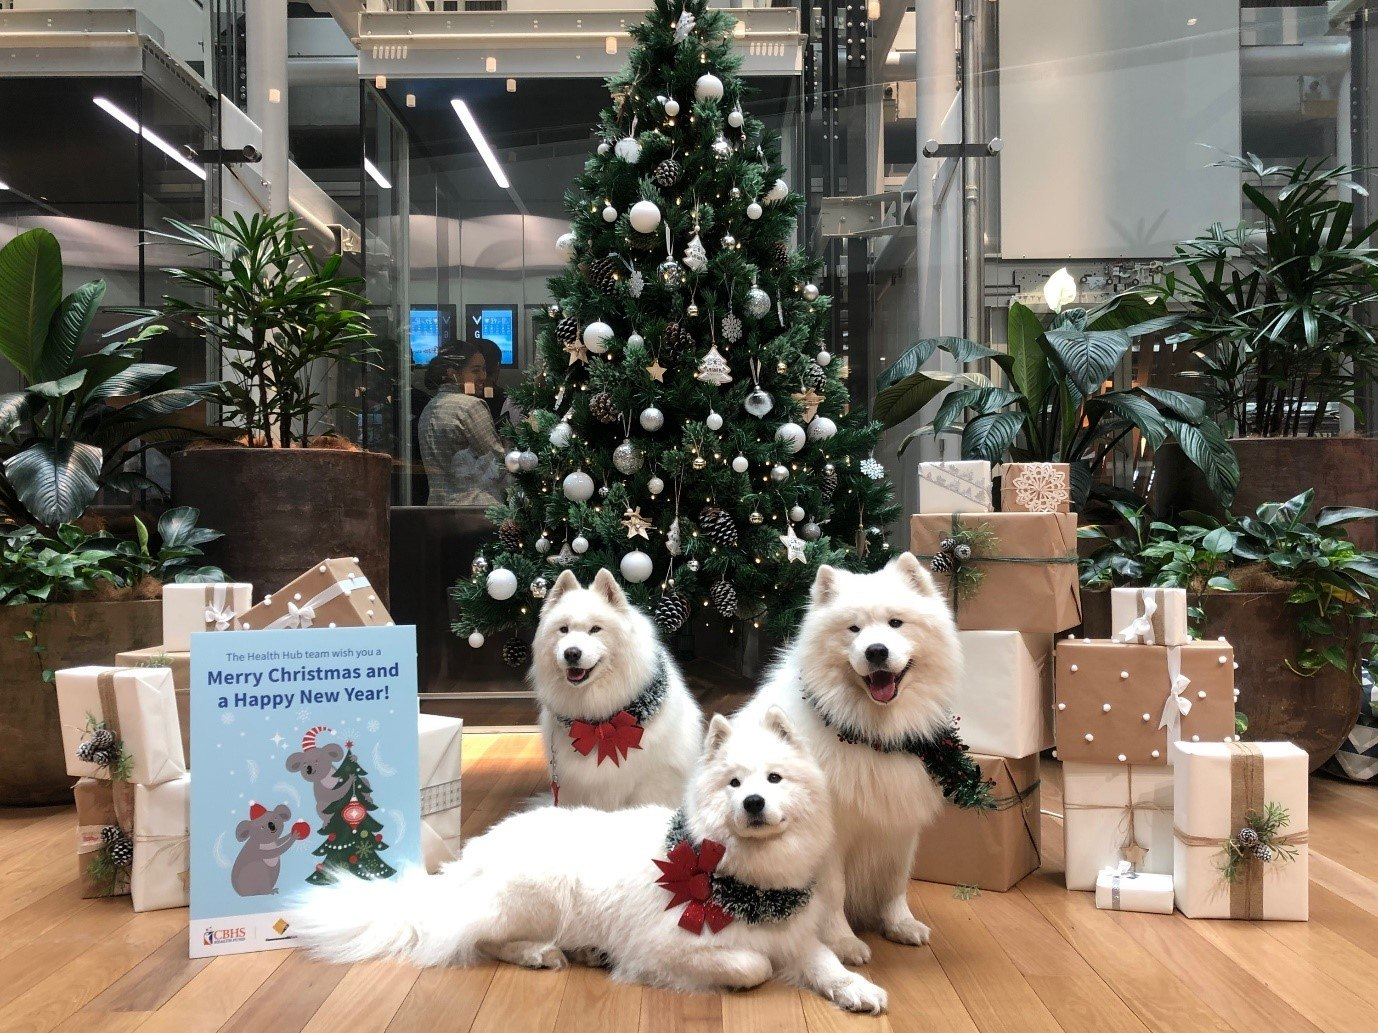 These beautiful Samoyed dogs visited CommBank staff at last Christmas for selfies and snuggles